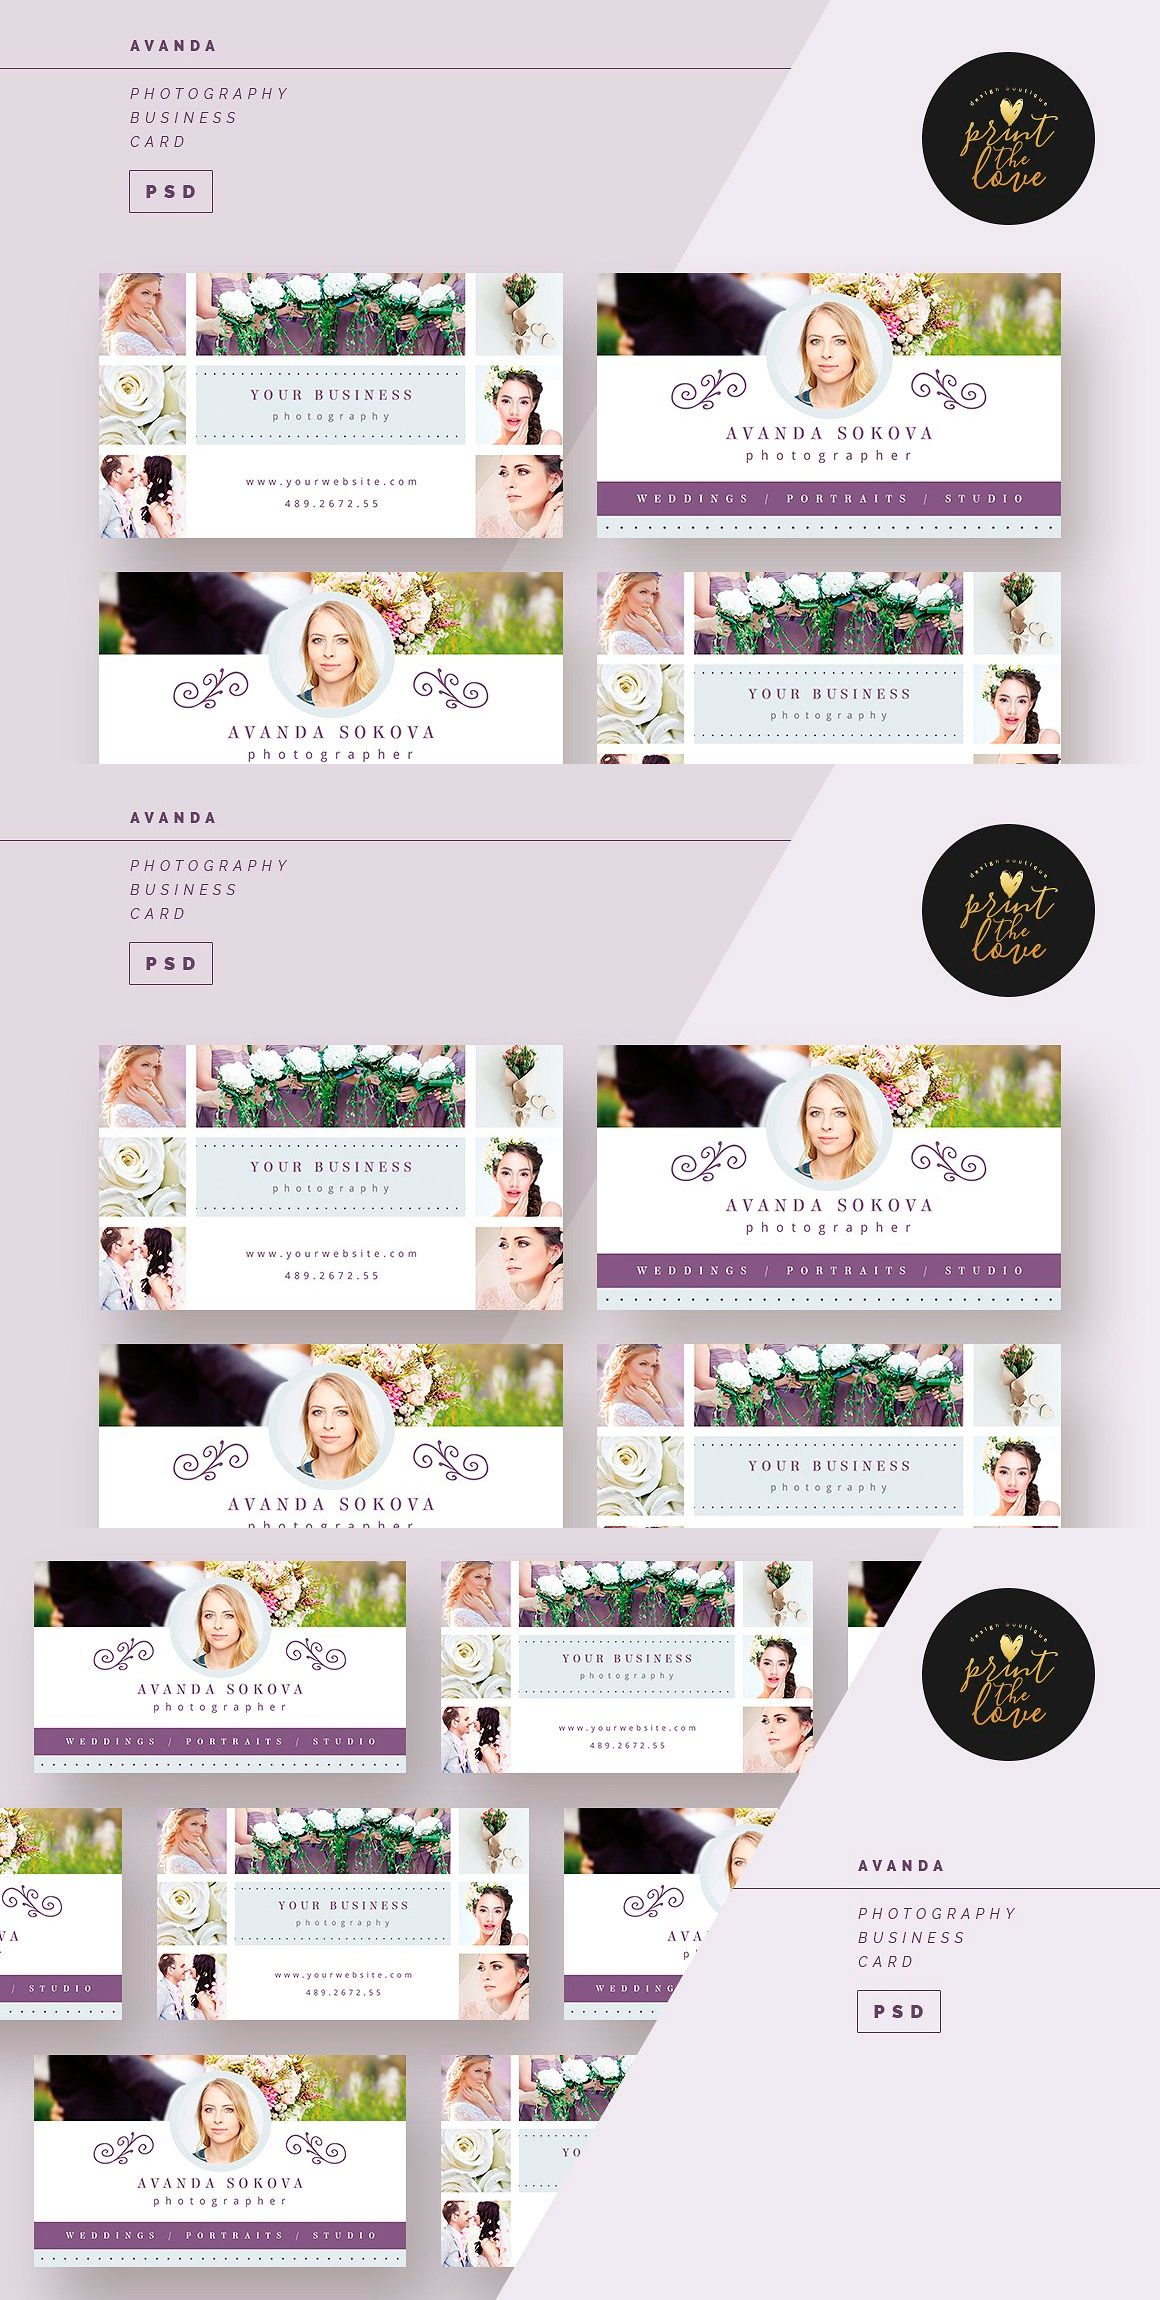 Avanda photography business card template psd pdf business card avanda photography business card template psd pdf alramifo Gallery